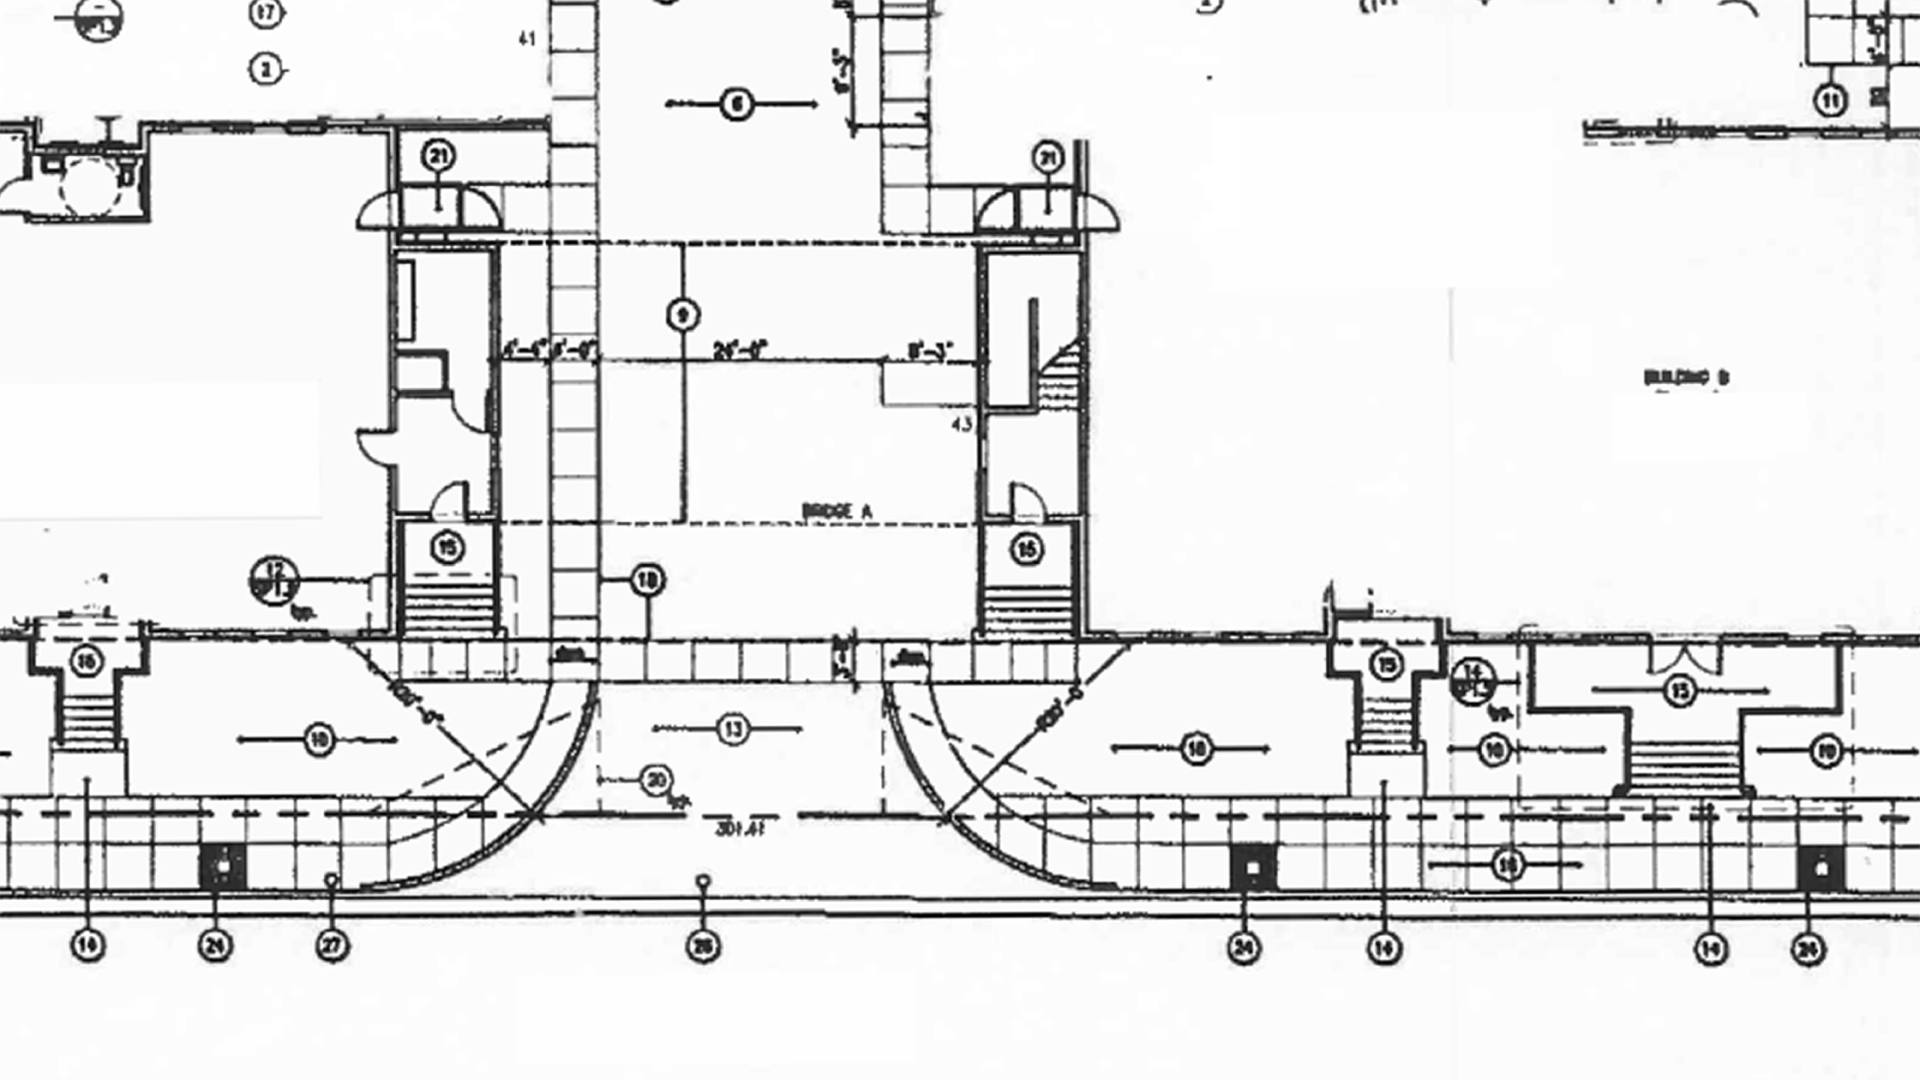 hight resolution of hvac diagram drawing template